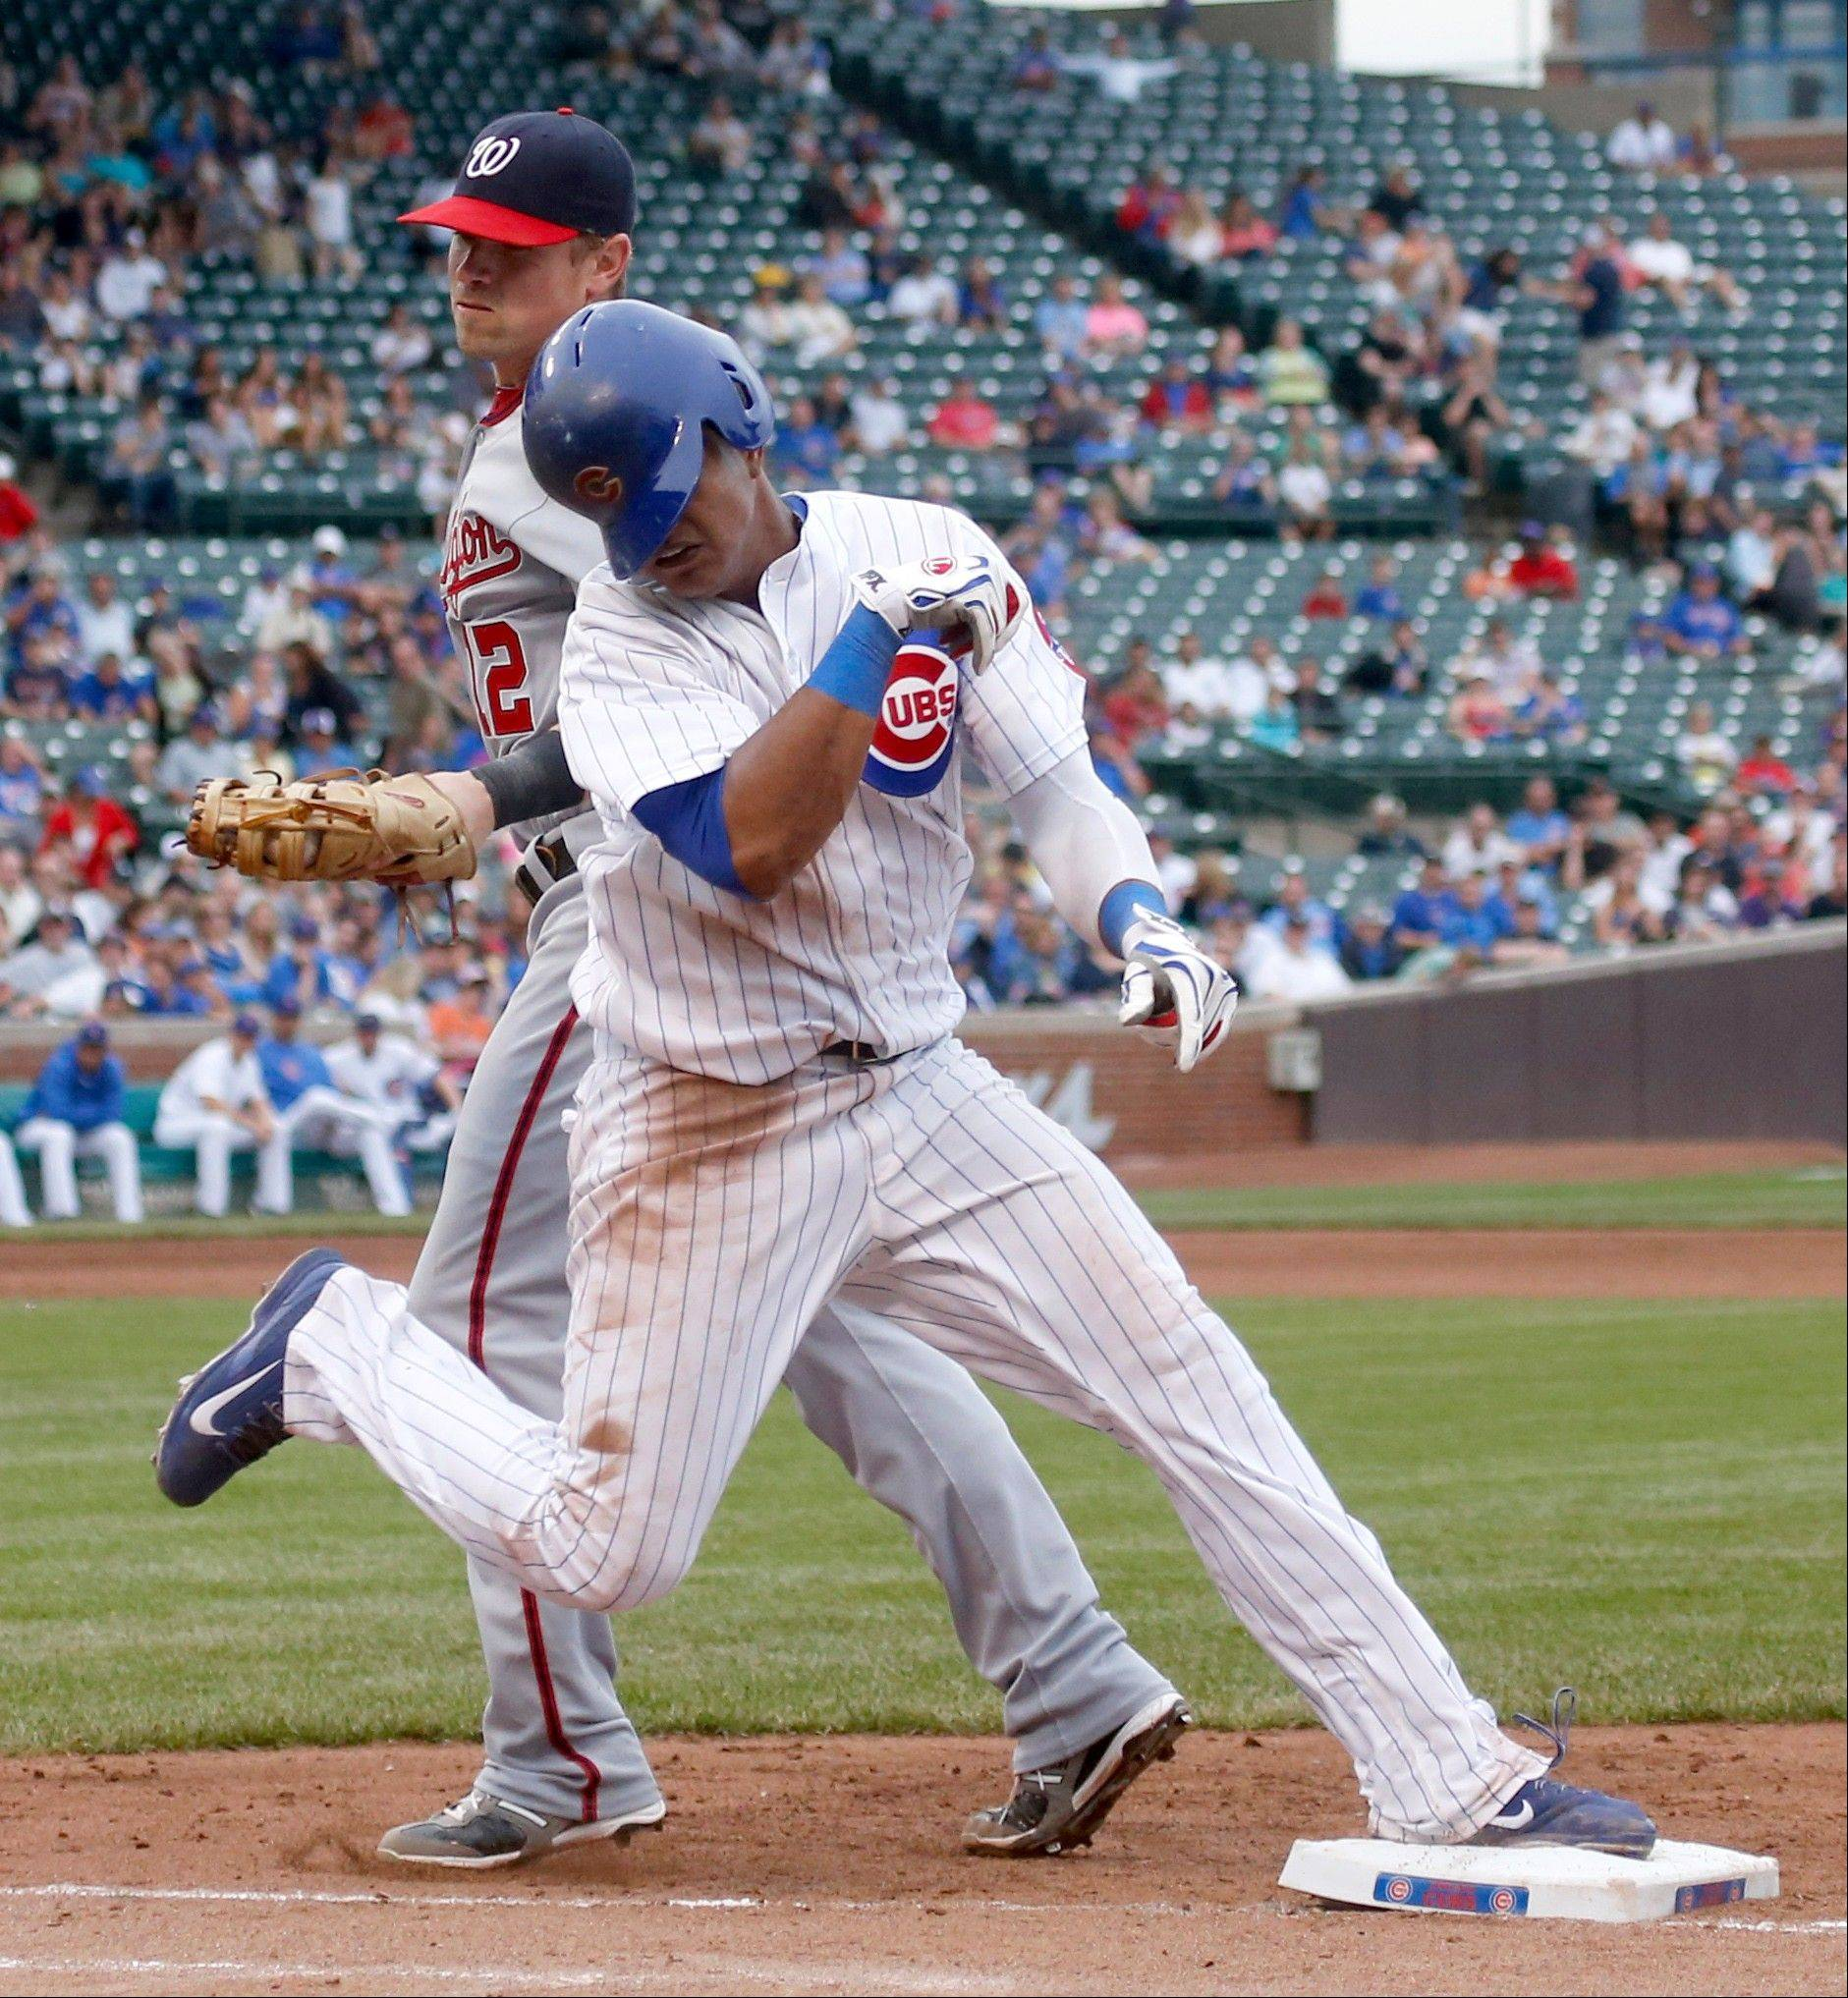 Chicago Cubs' Starlin Castro, right, is safe at first avoiding the tag by Washington Nationals first baseman Tyler Moore on a high throw by third baseman Ryan Zimmerman during the sixth inning of a baseball game Thursday, Aug. 22, 2013, in Chicago.